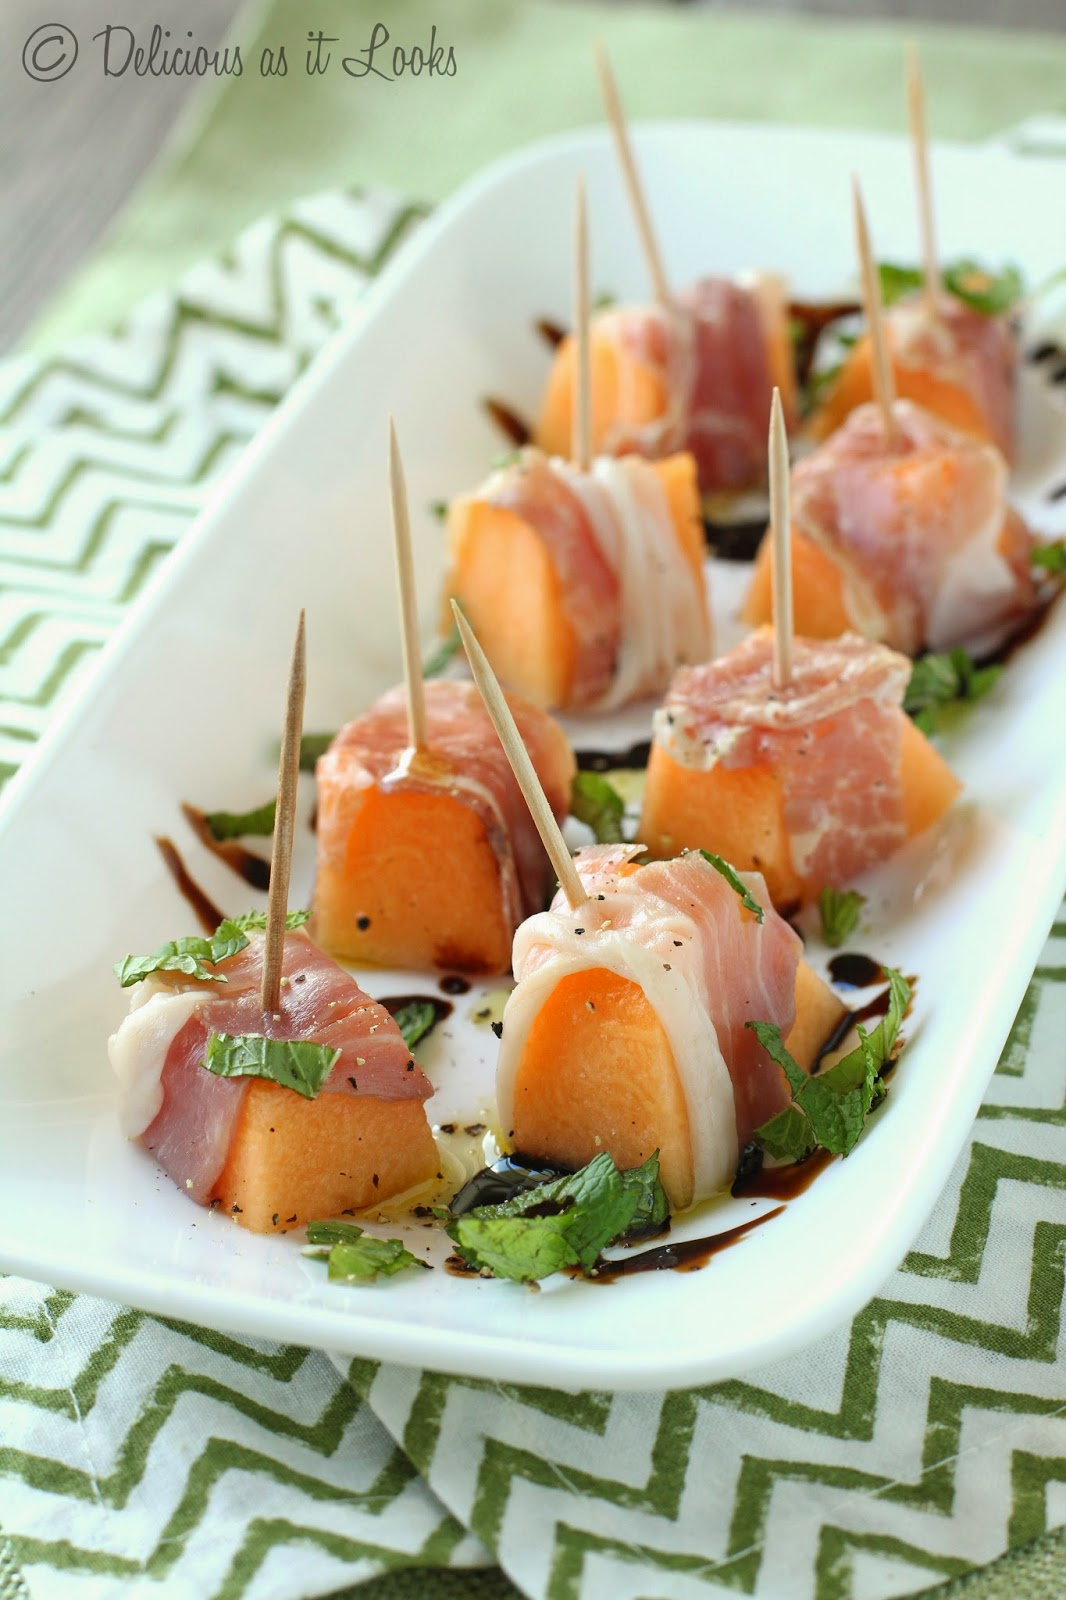 Prosciutto-Wrapped Cantaloupe with Balsamic Reduction {Low-FODMAP}  /  Delicious as it Looks